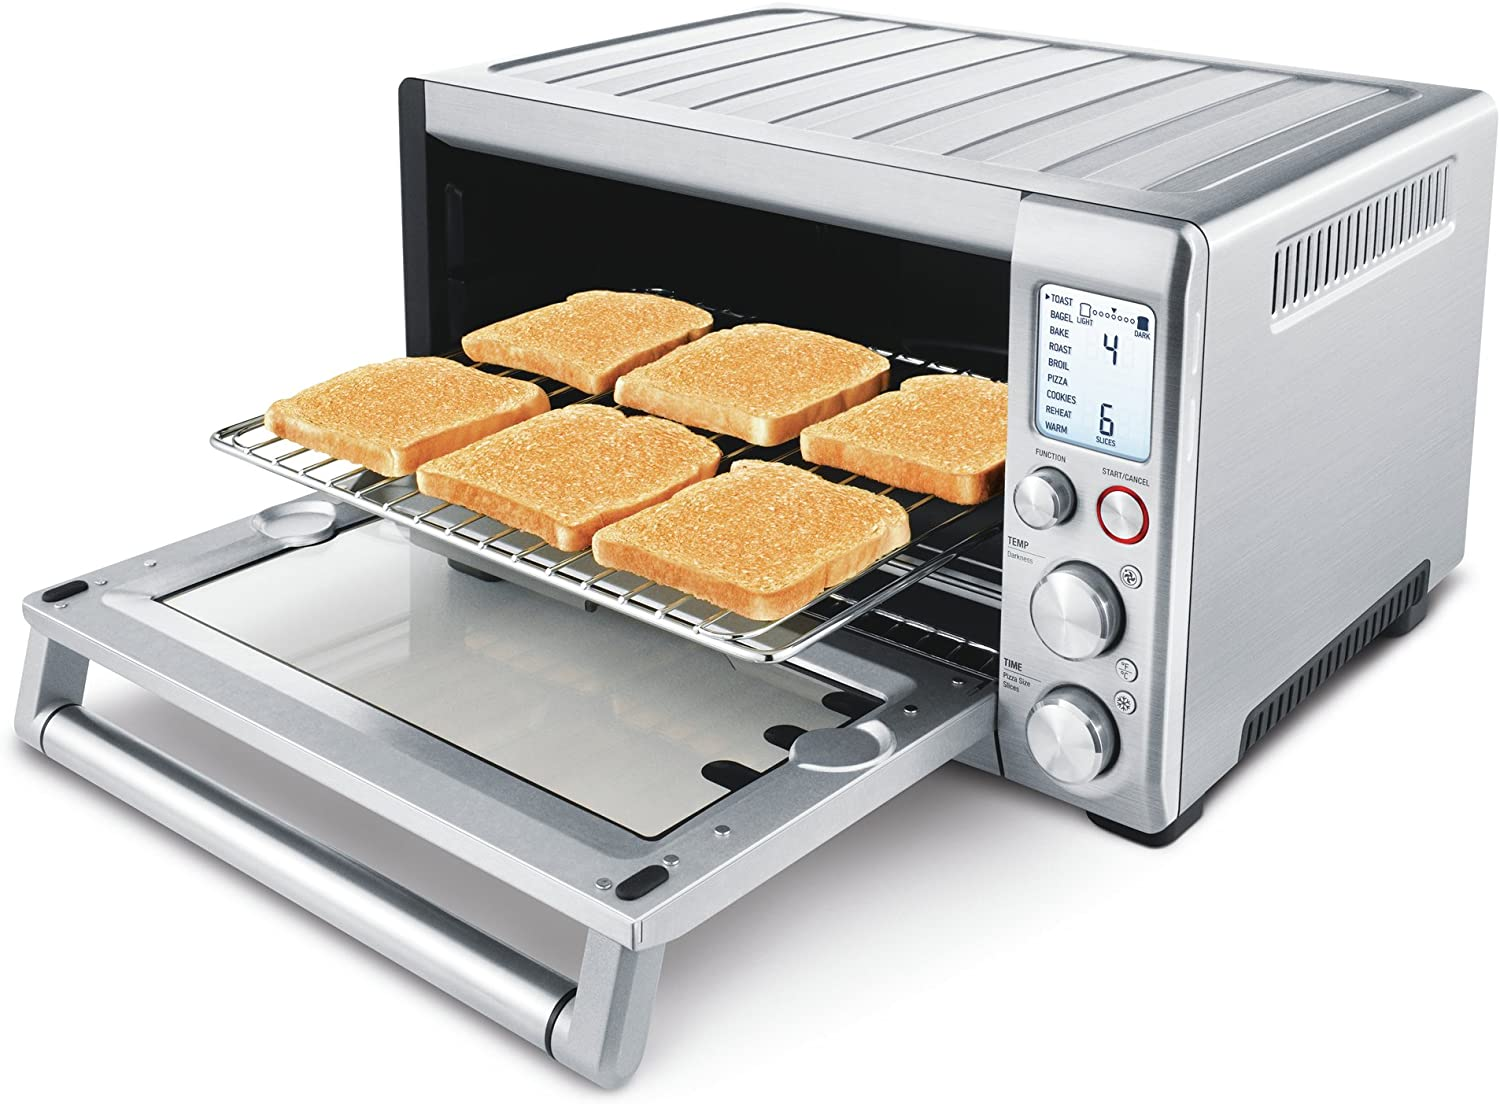 Review of Breville BOV800XL Smart Toaster Oven 4